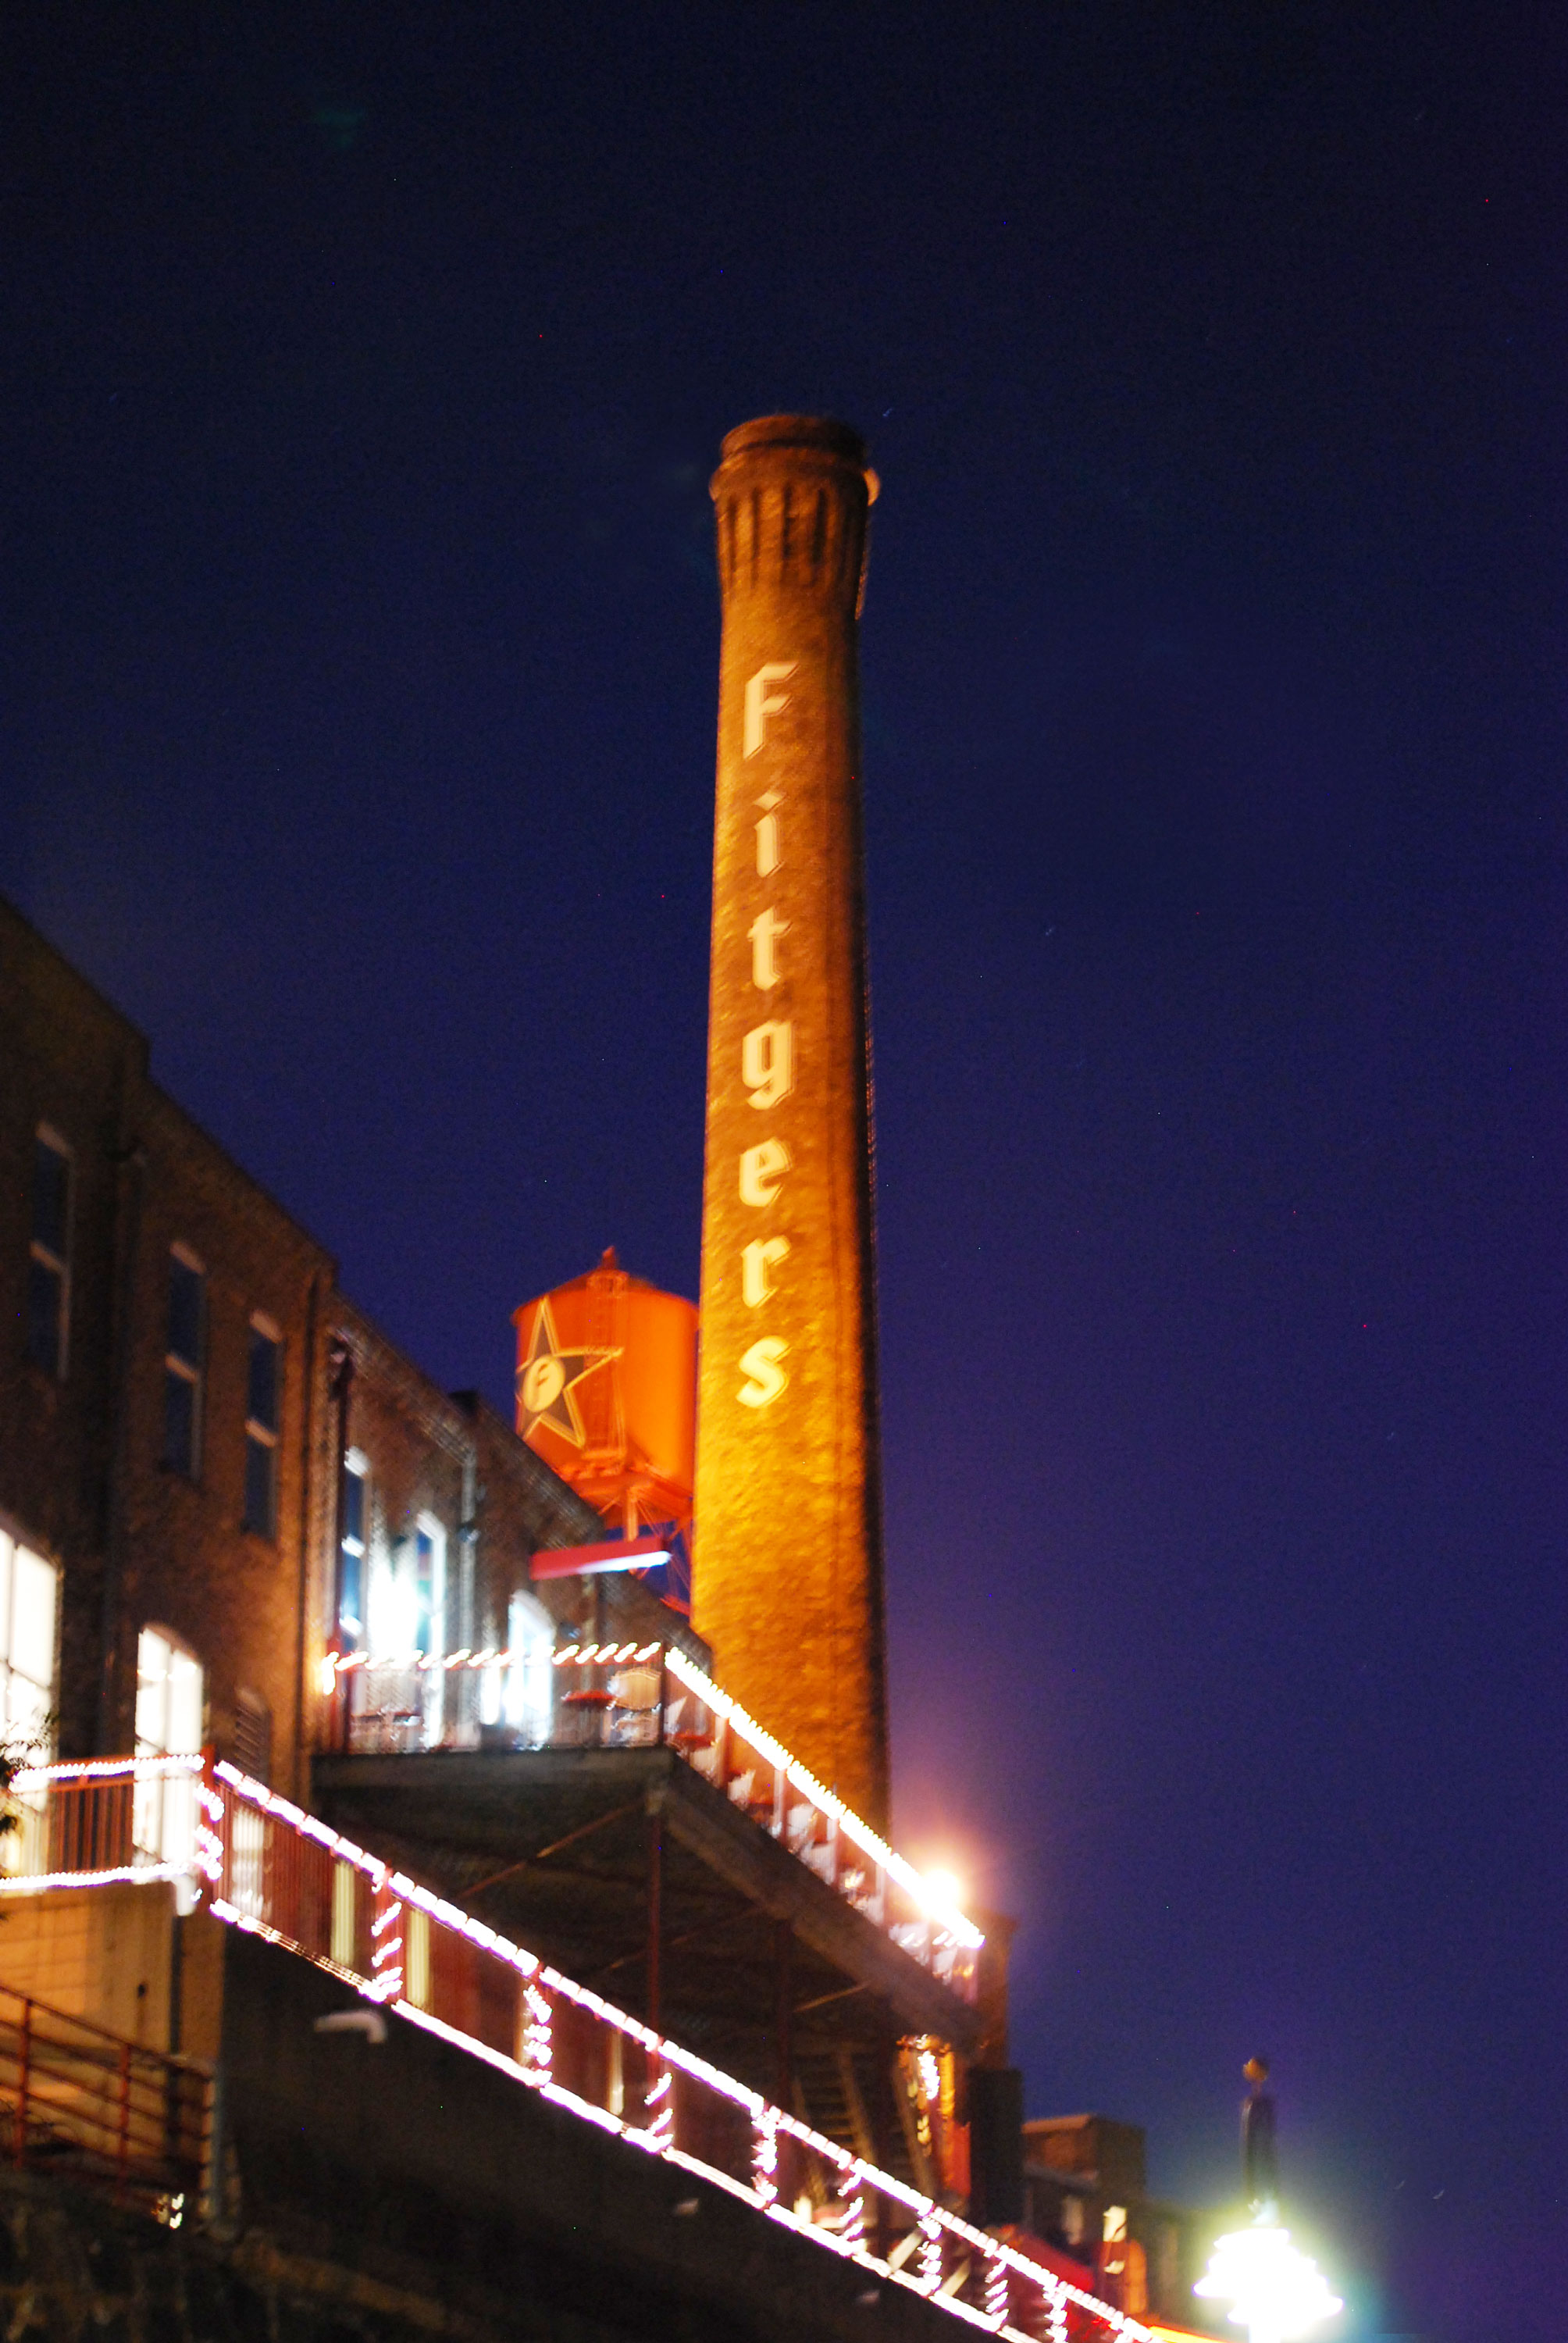 Fitger's Brewery Complex at night, Duluth, MN